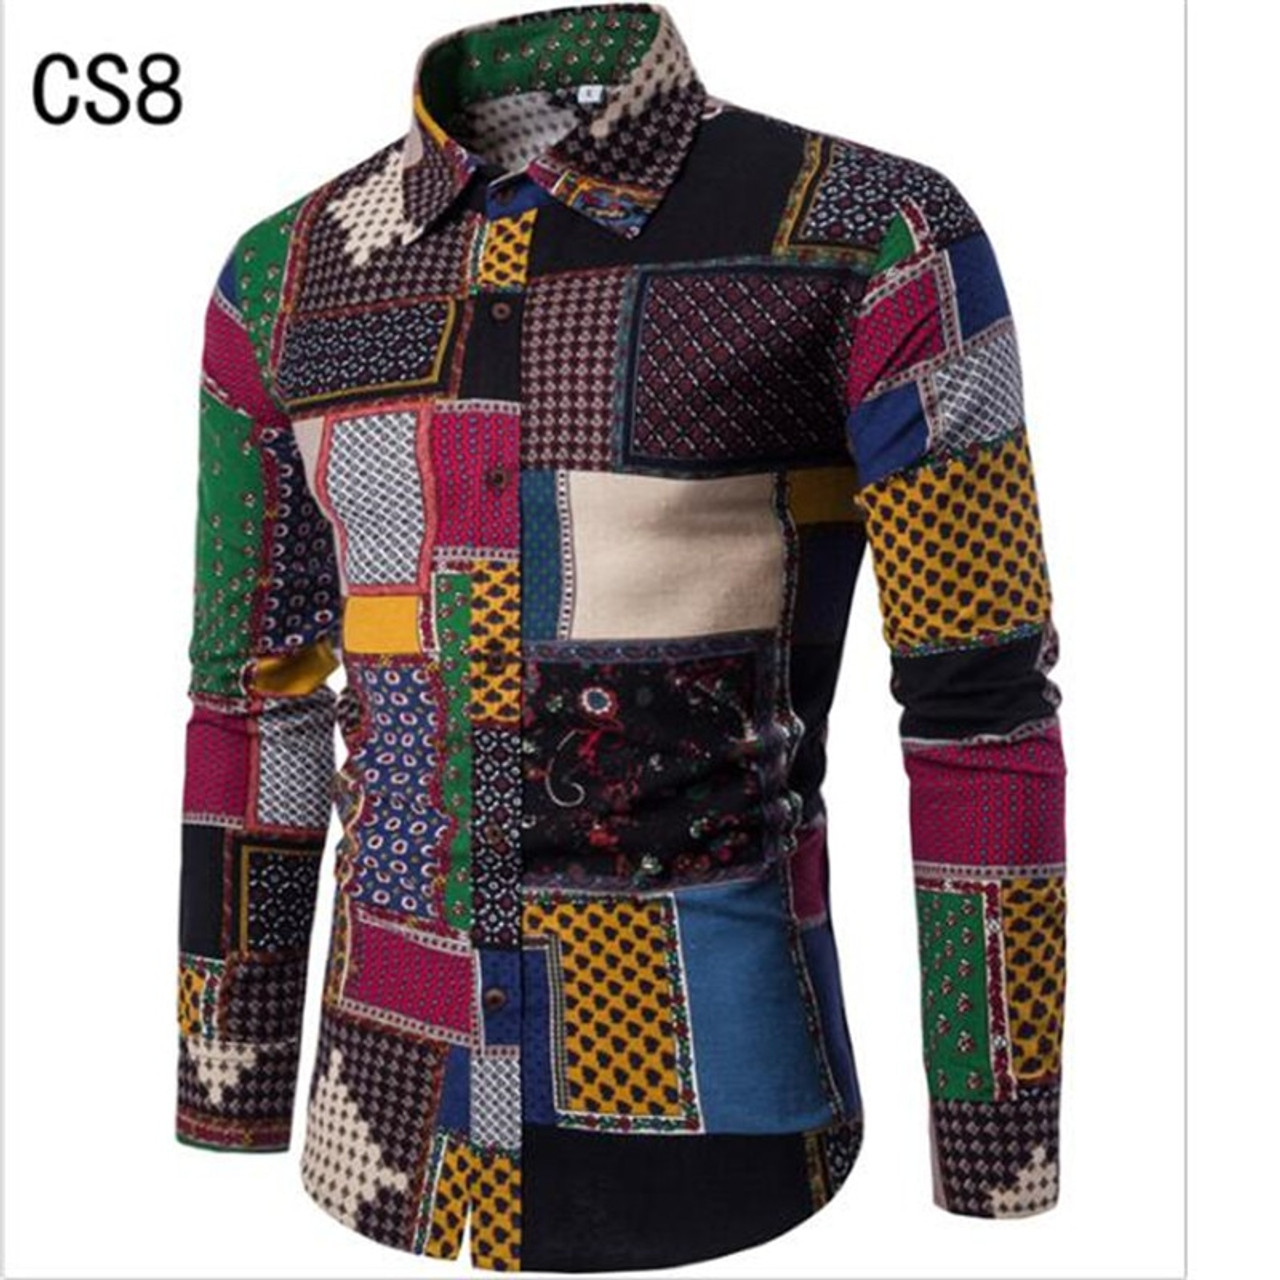 New Brand Clothing 2018 Fashion Shirt Male Flax Dress Shirts Slim Fit Turn Down Men Long Sleeve Mens Hawaiian Shirt Big Sizes5xl Onshopdeals Com